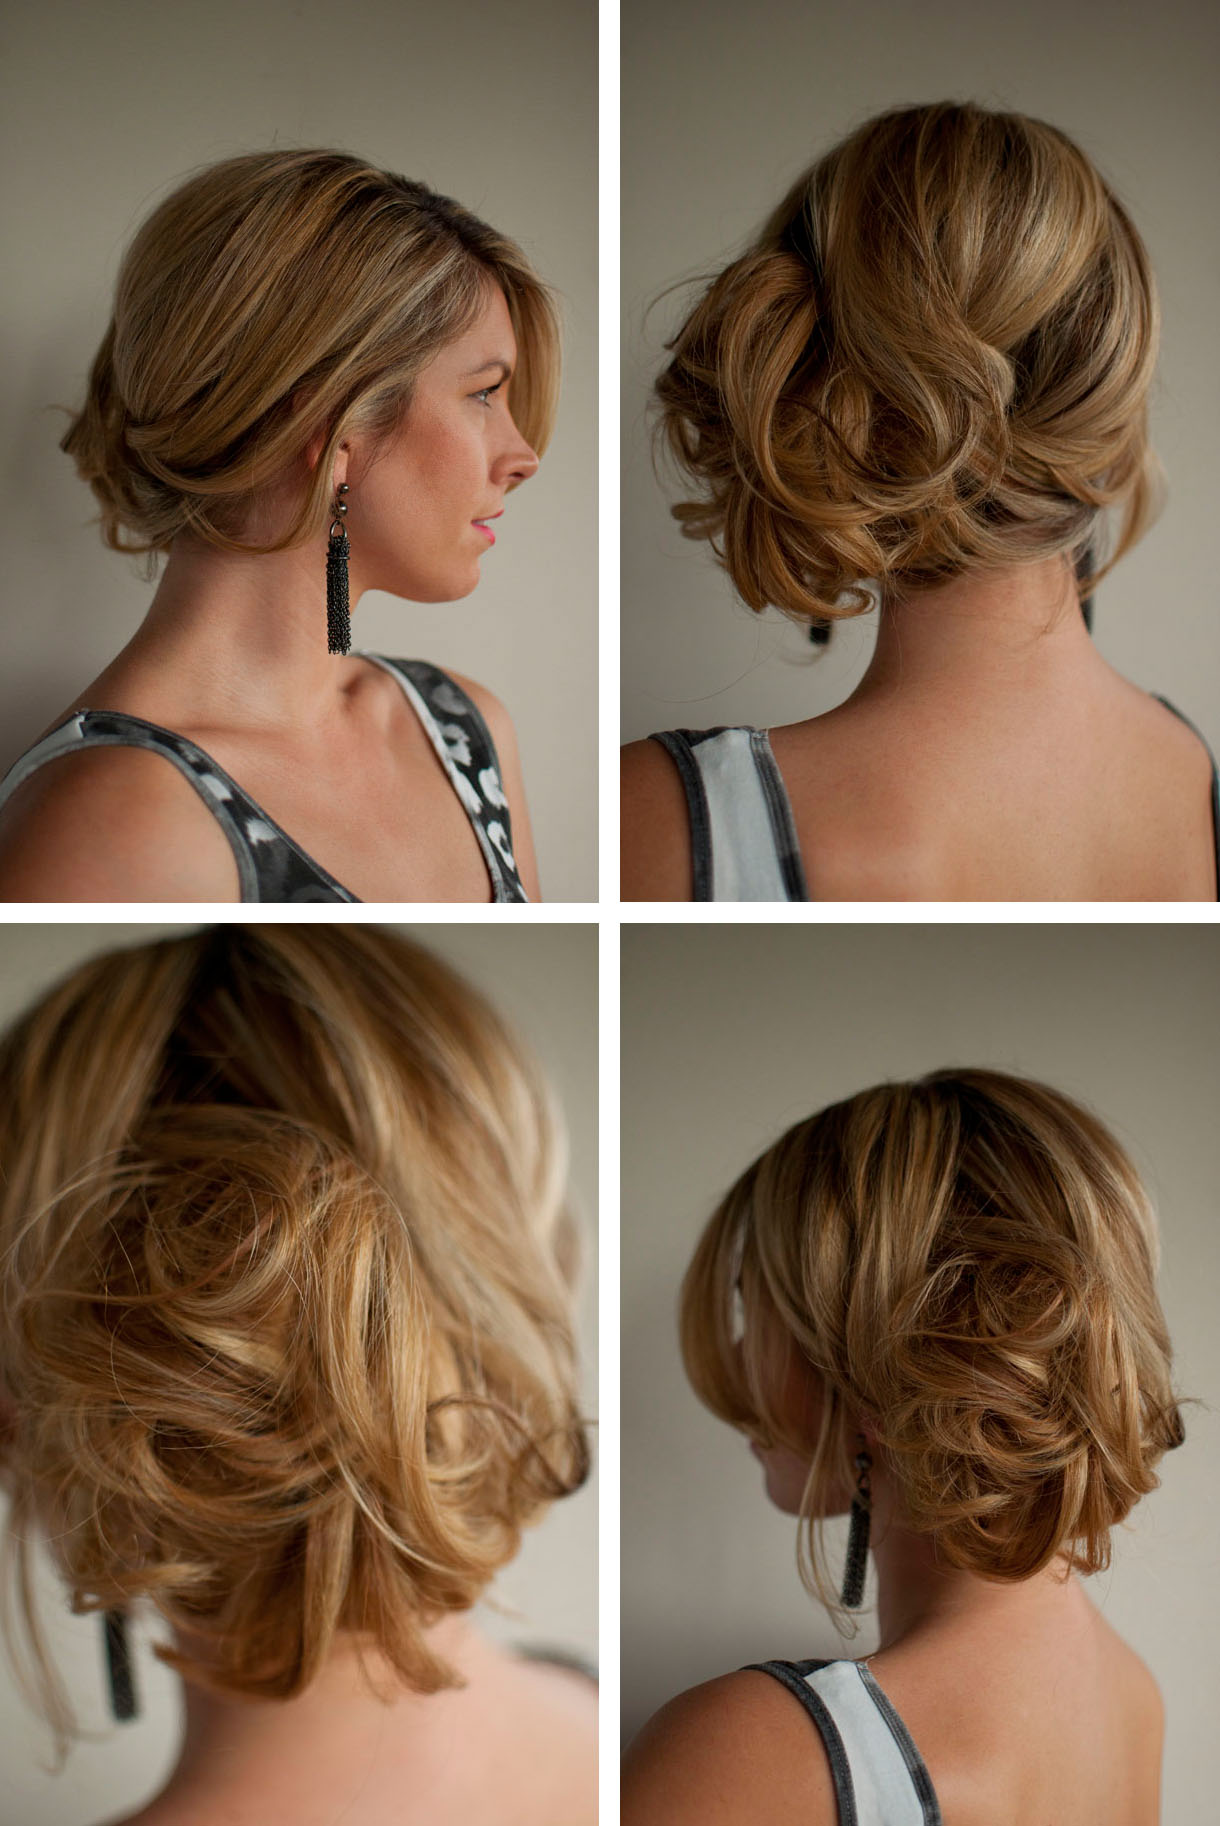 Hair Romance Reader Question - Hairstyles for a 1920s themed wedding ...